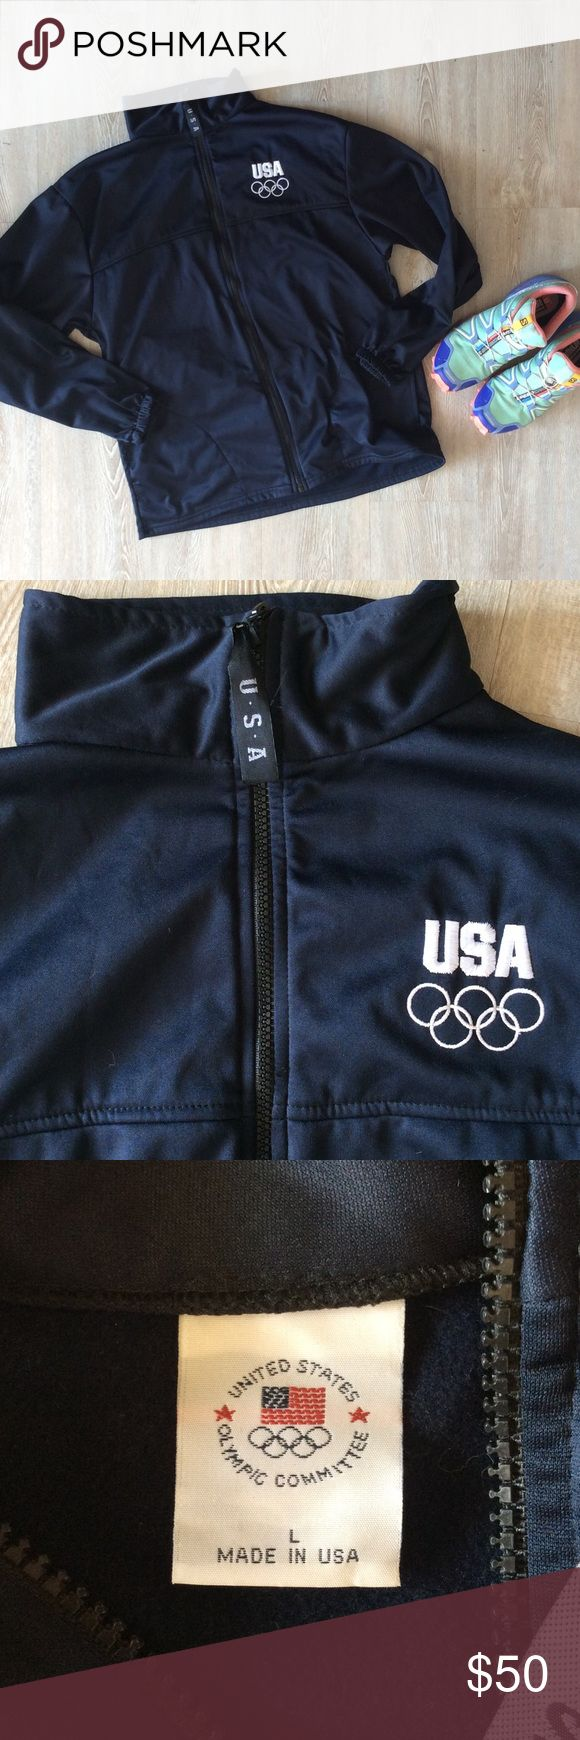 USA Olympic Committee Jacket This jacket was used by the Olympic committee! It's vintage too! It's 100% polyester! Smoke and pet free home! Offers accepted! Jackets & Coats